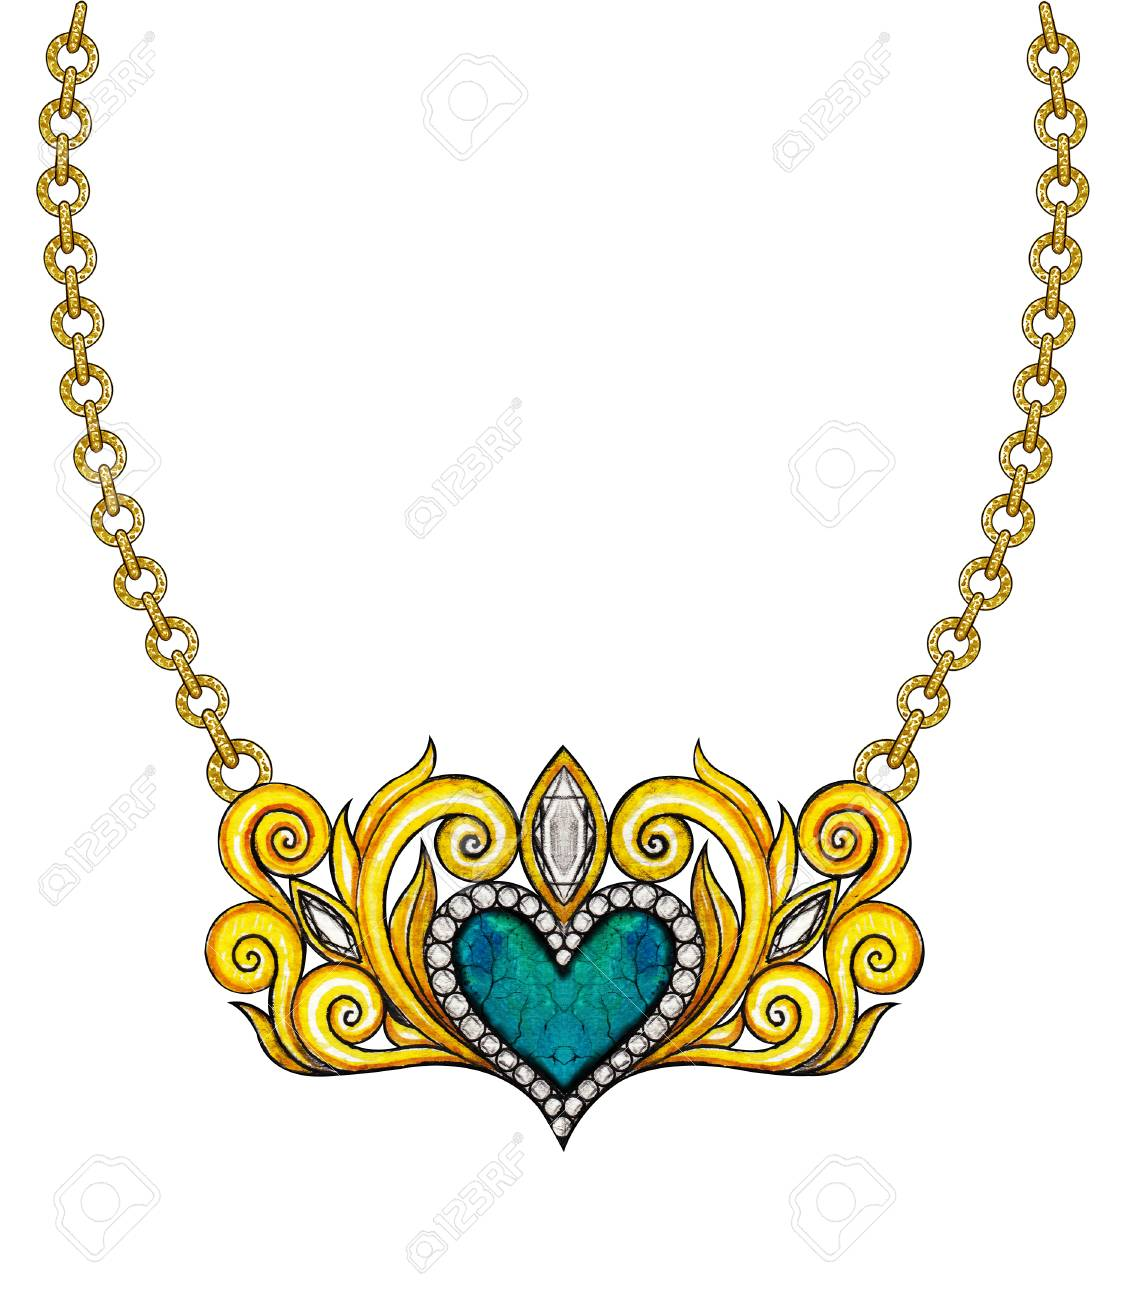 Heart jewelry art picture